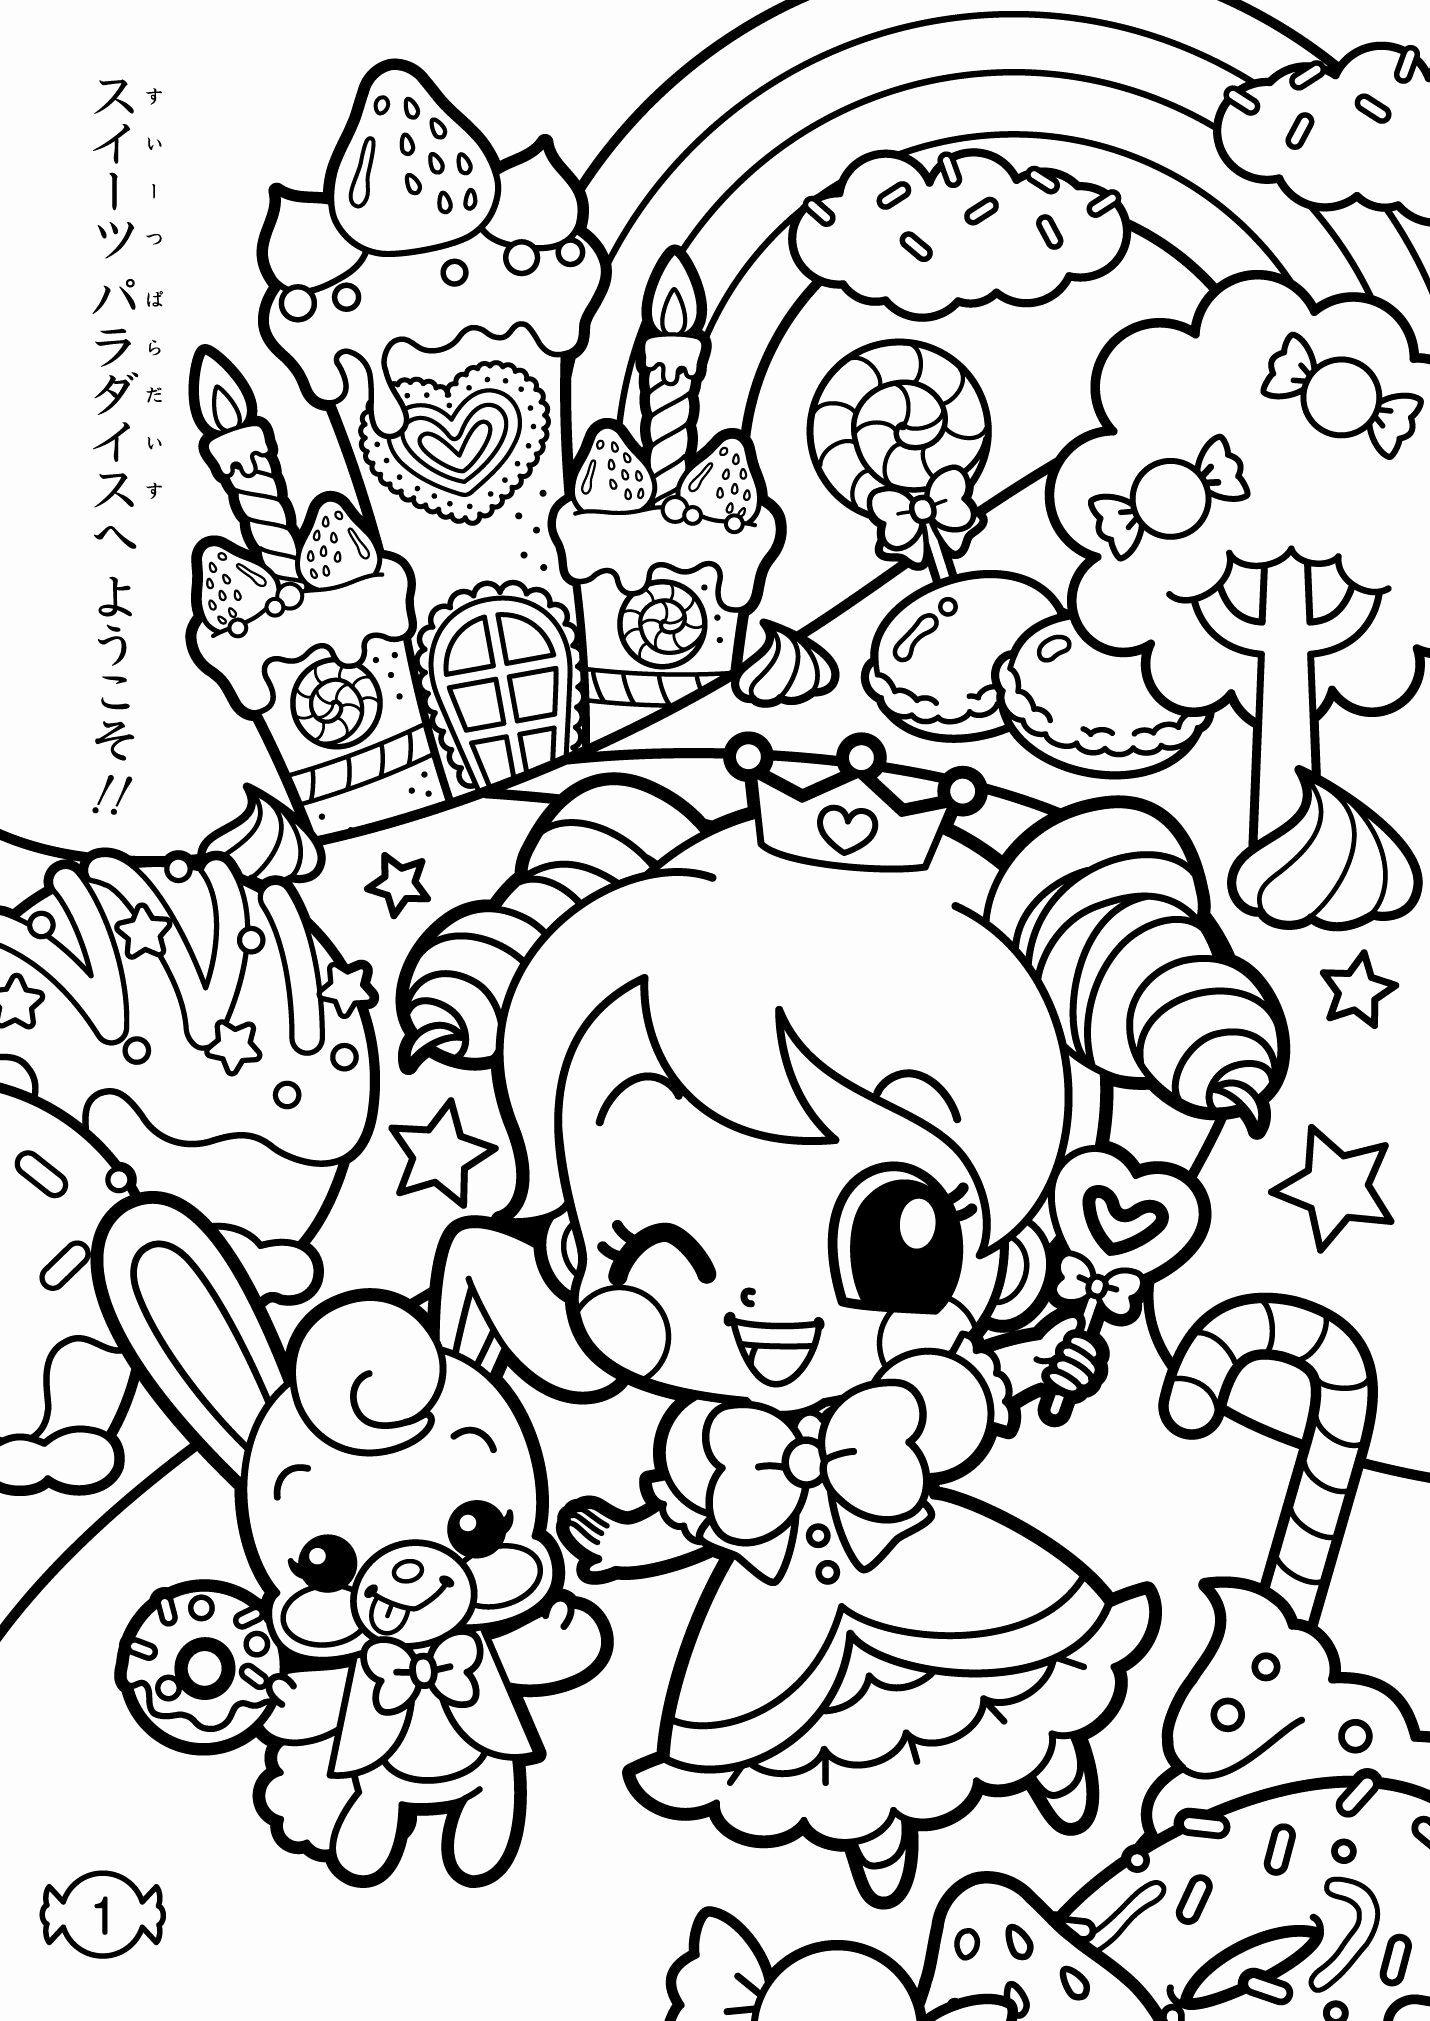 Cute Kawaii Animal Coloring Pages Fresh The Best Free Kawaii Coloring Page Images Download Fro Cute Coloring Pages Disney Coloring Pages Unicorn Coloring Pages